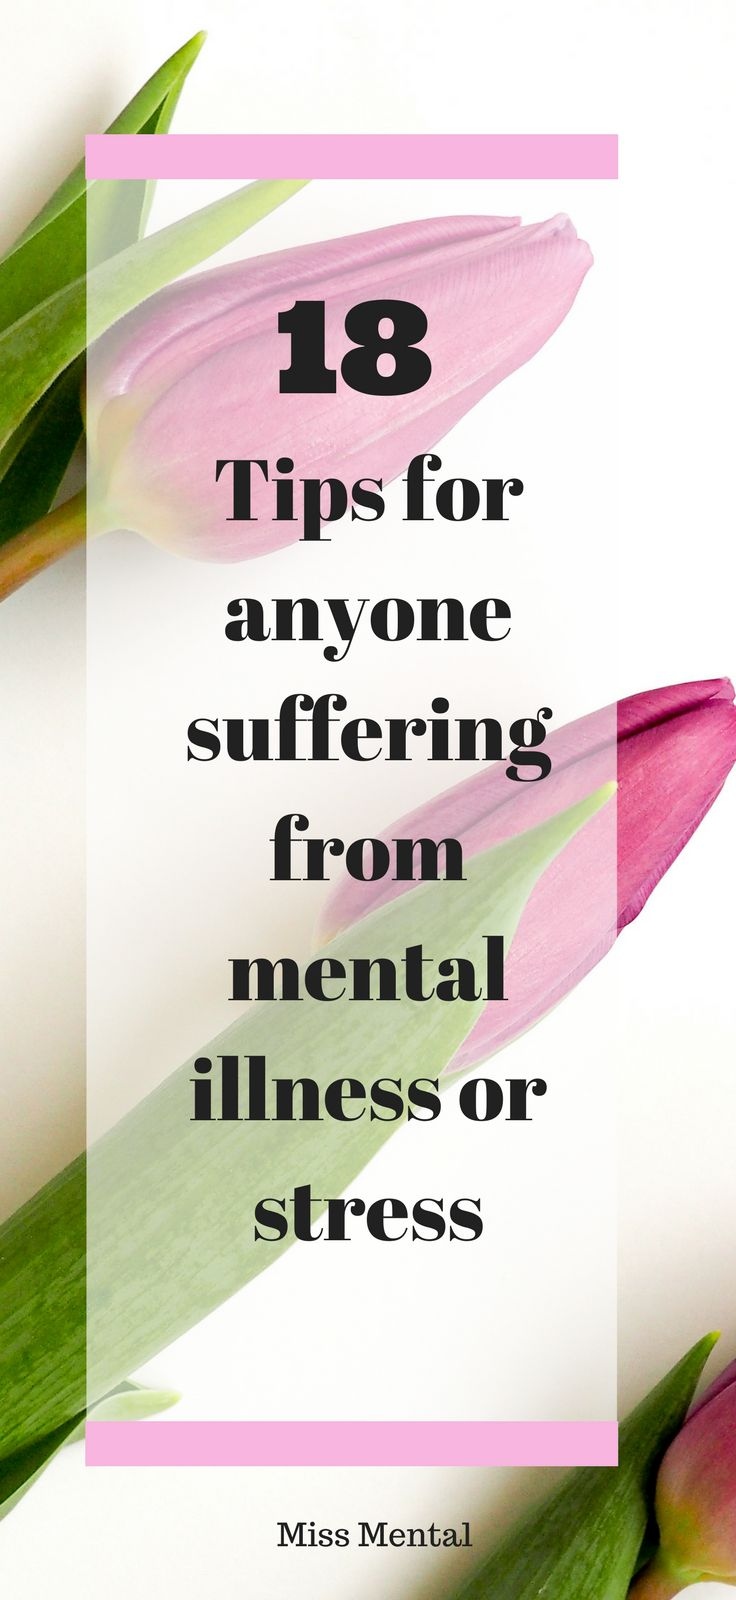 All the Mental health tips you need right now! Read this if you are suffering from stress or mentalillness. #mentalhealth #mentalhealthawareness #mentalillness #selfgrowth #positivity